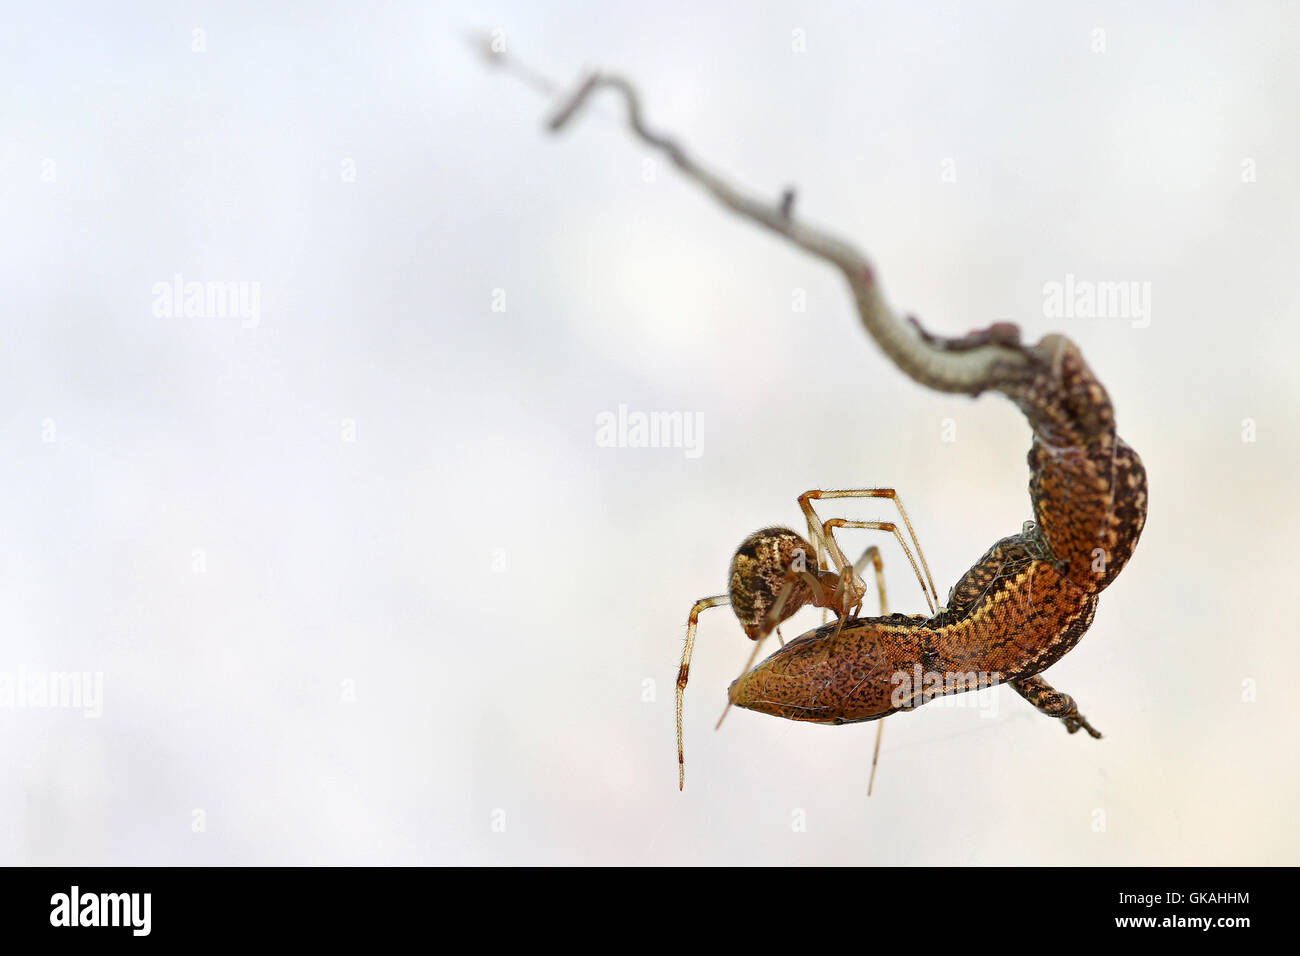 Spider feeding on a small lizard caught in its web against a white background - Stock Image